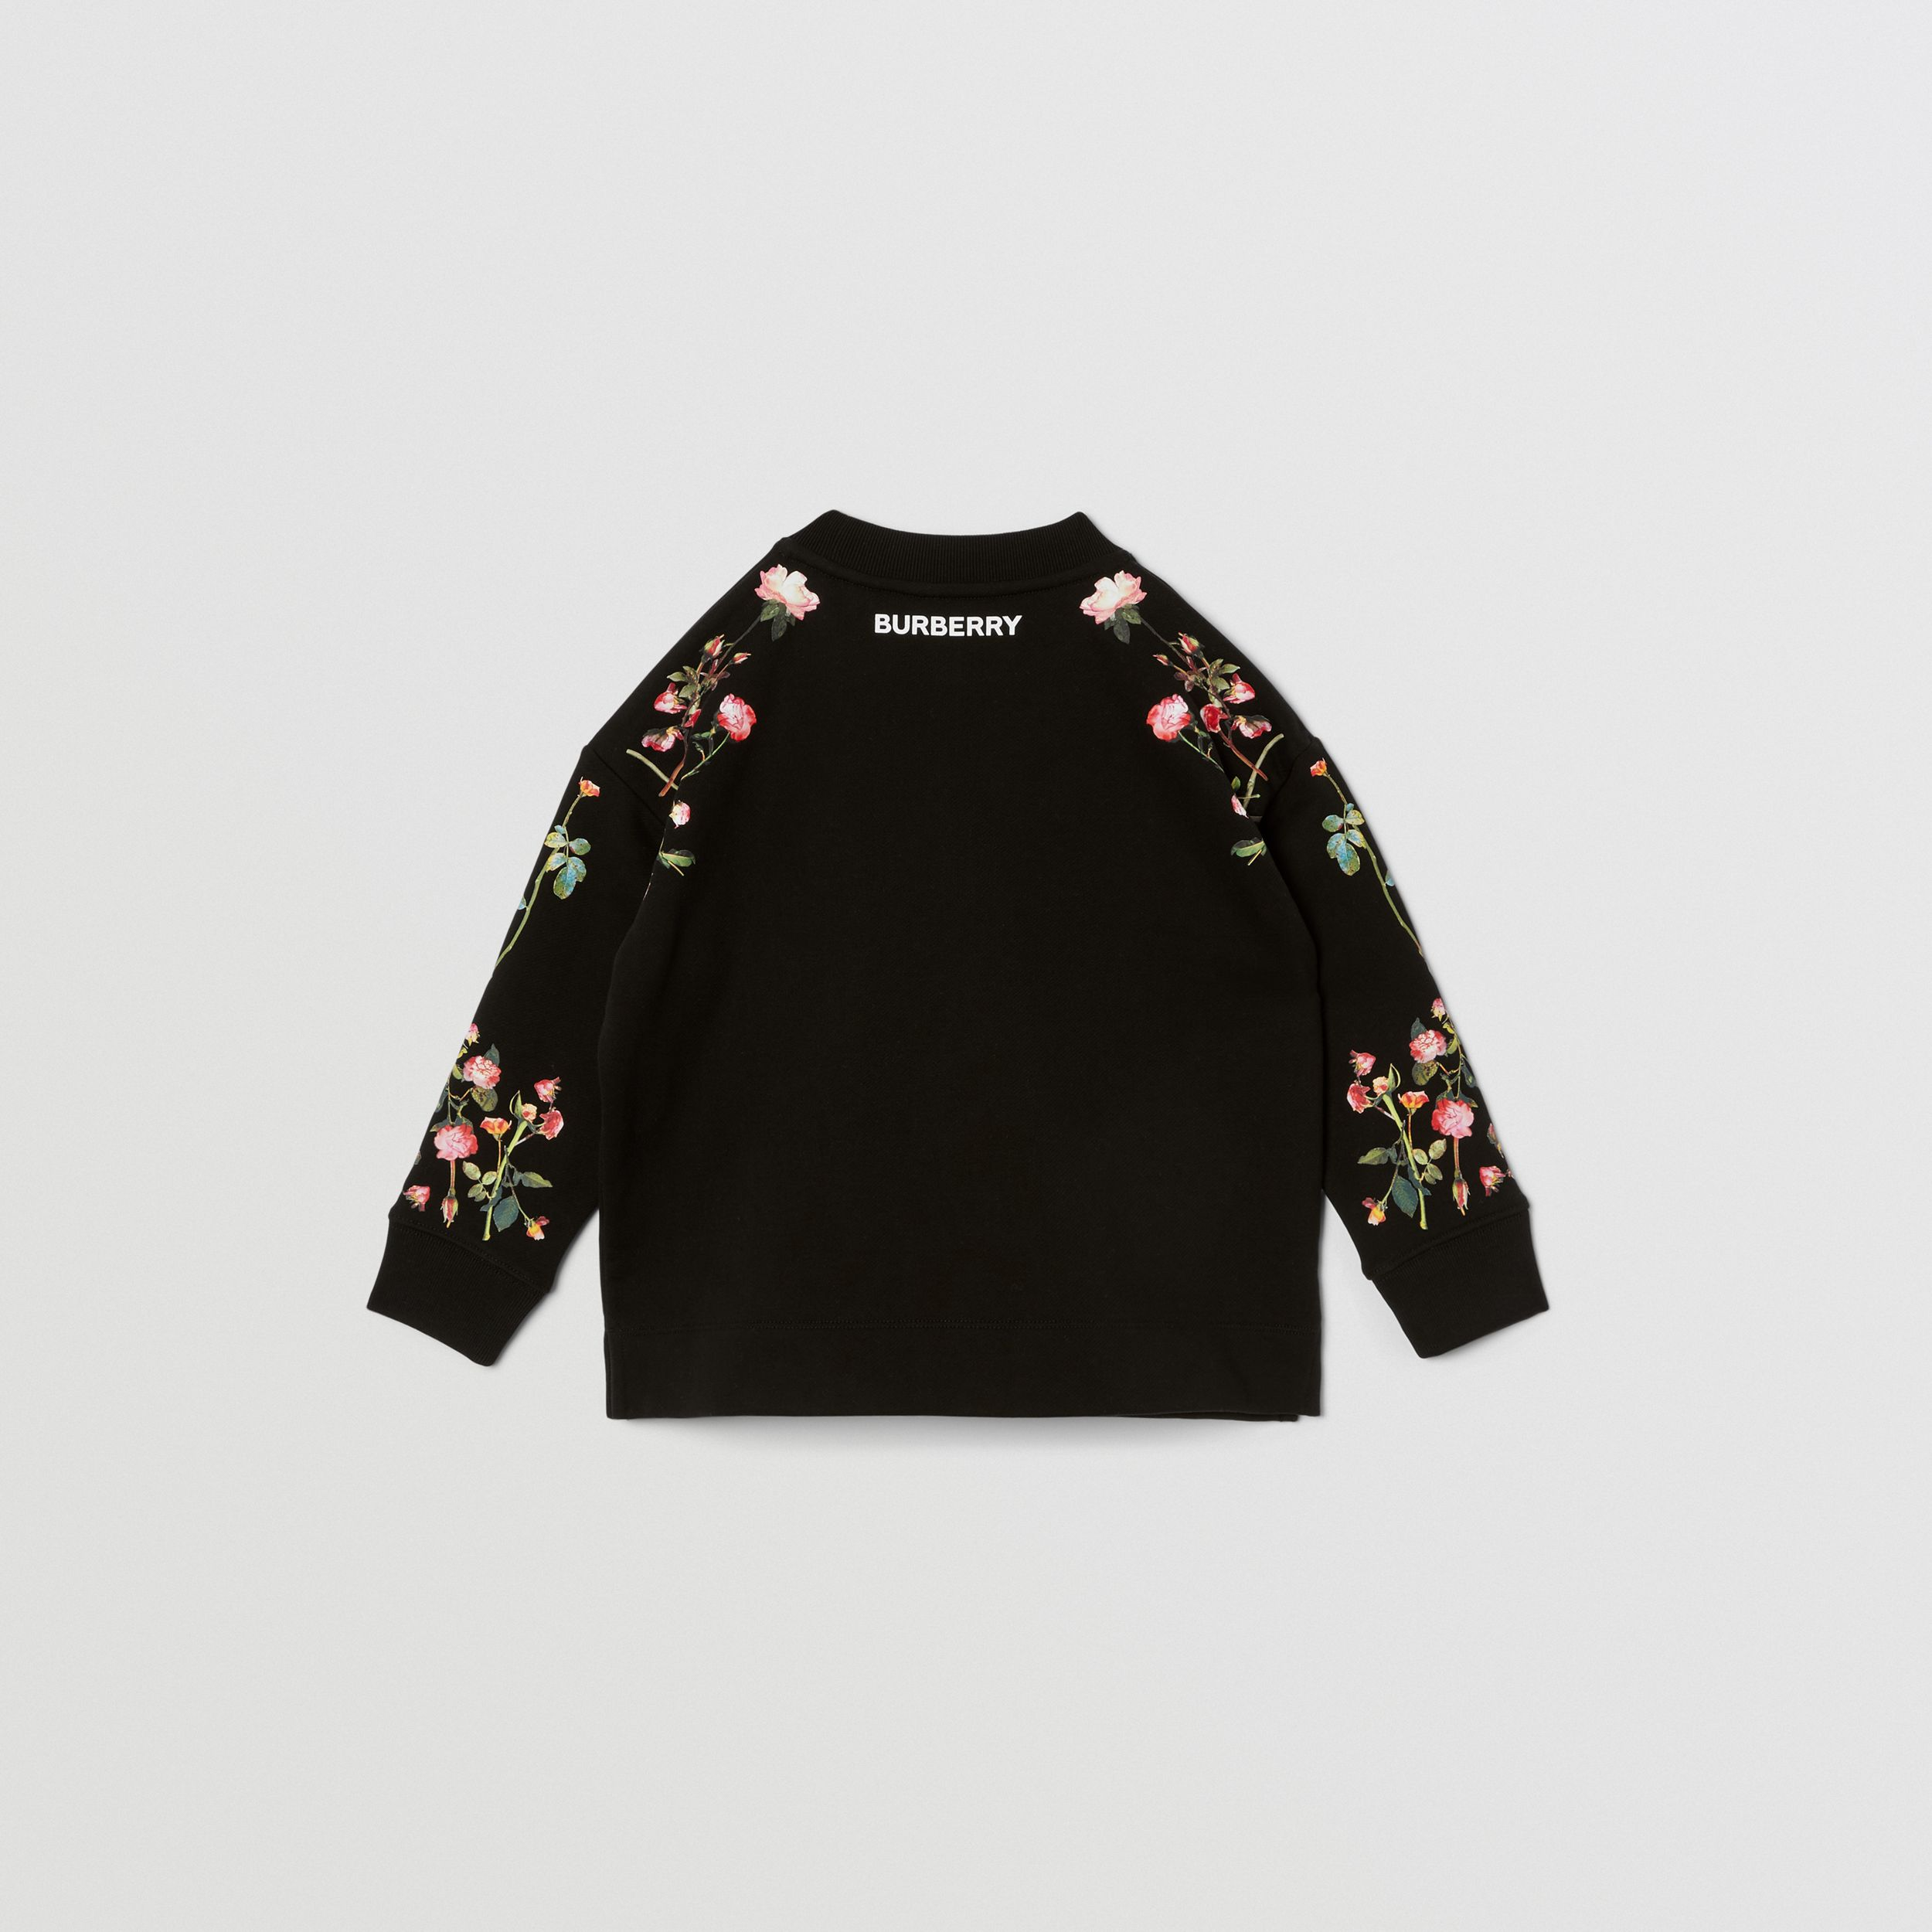 Montage Print Cotton Sweatshirt in Black | Burberry Australia - 4